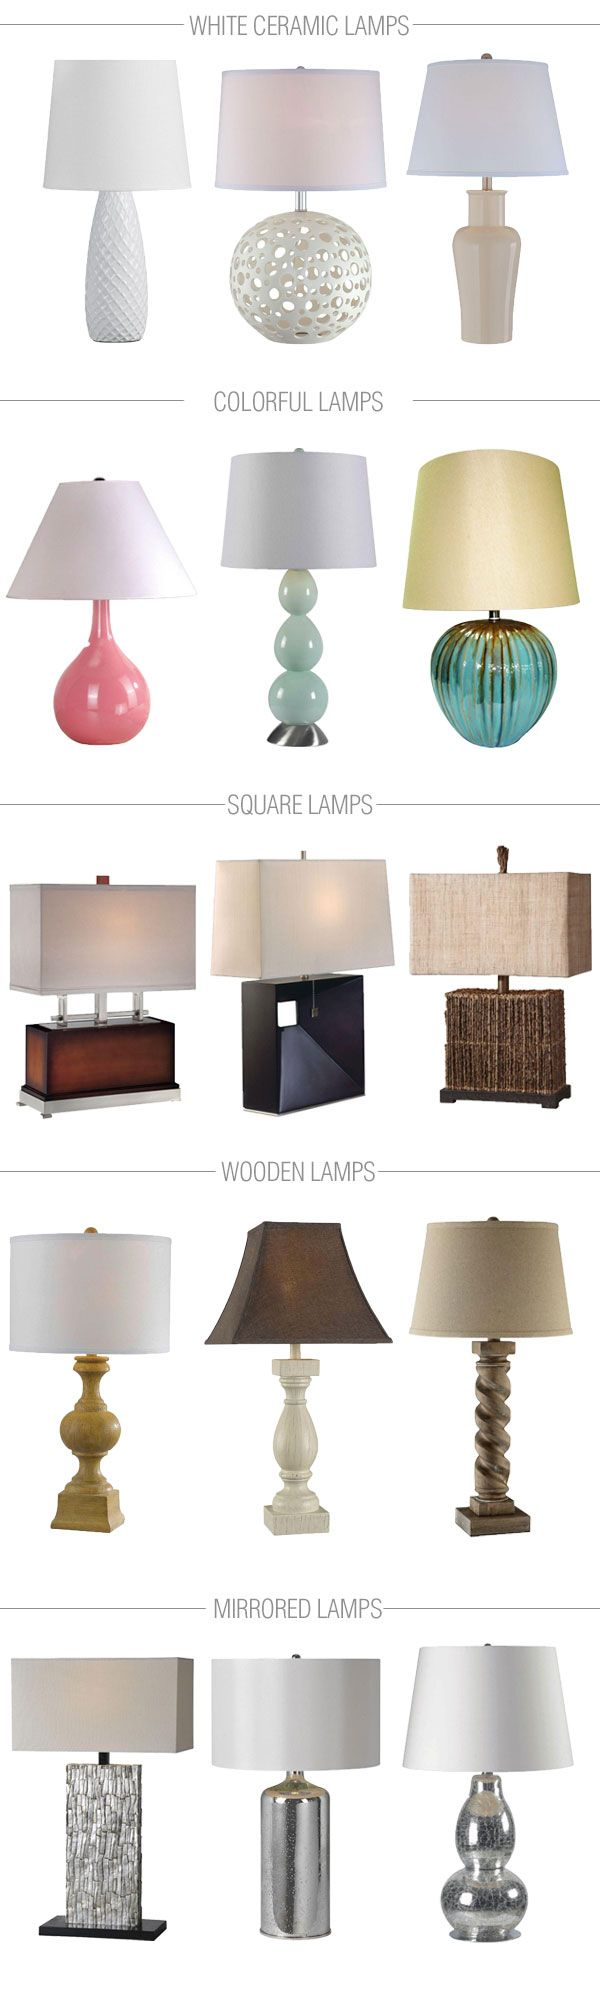 Table lamps are so versatile and bring both function and drama to a room. Here are 15 of our favorite options. Which one do you like best?